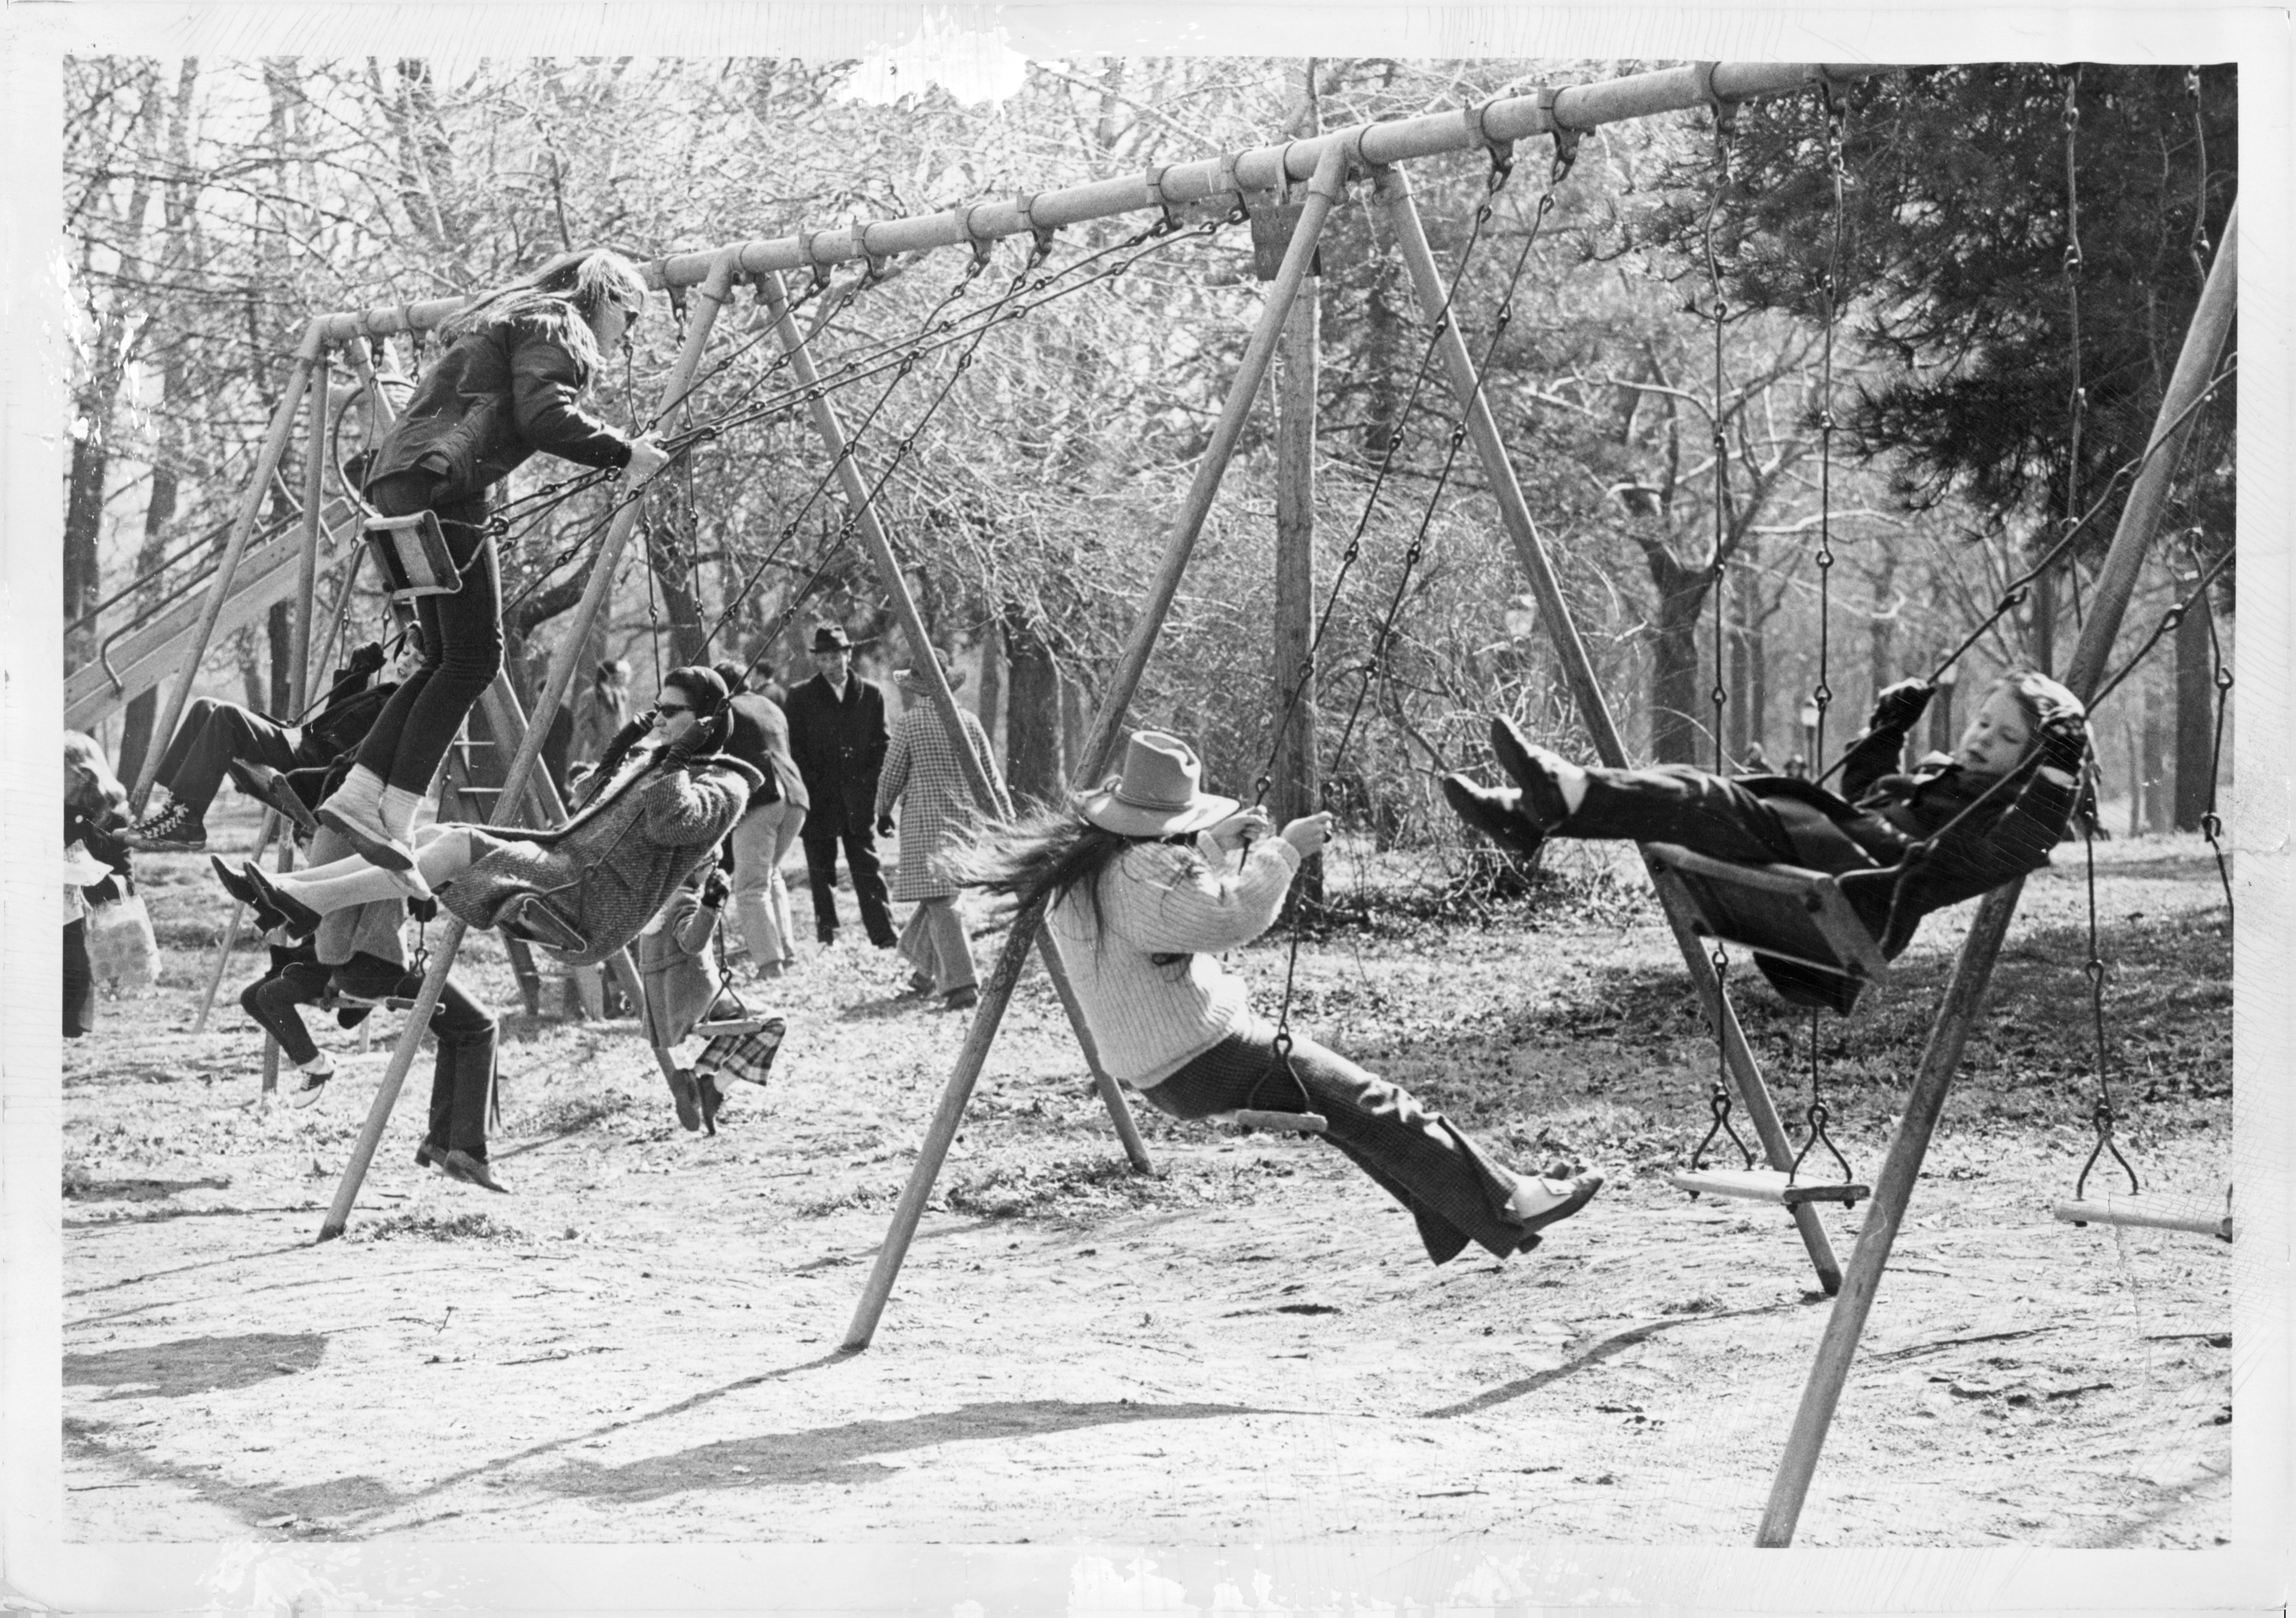 A group of adults and children swinging